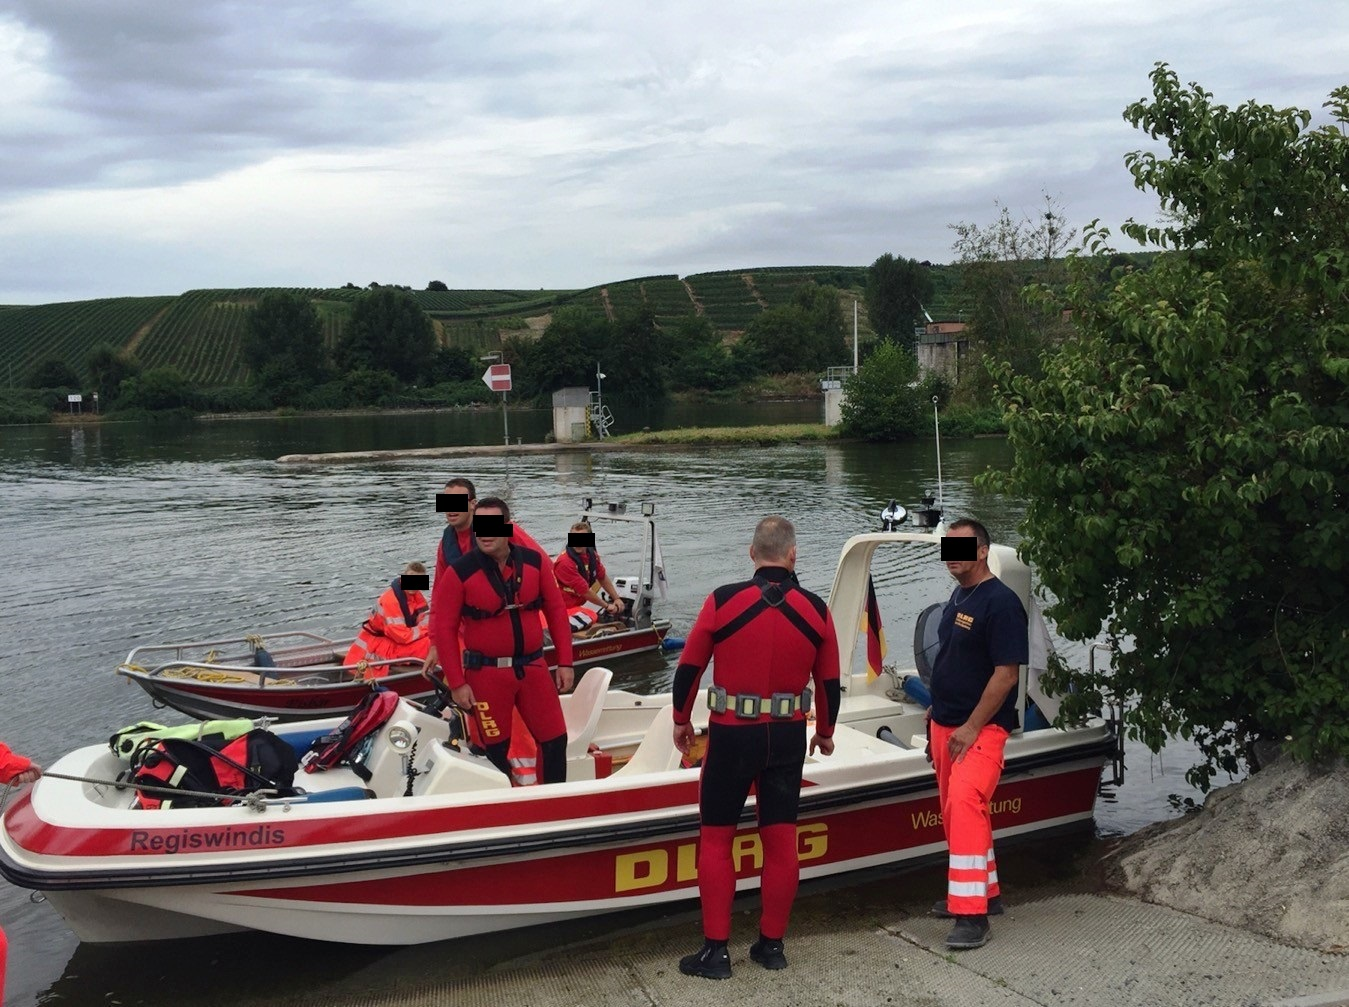 If you encounter difficulties on Lauffen's waters, the Regiswindis rescue boat just might pick you up. It's operated by the DLRG, Germany's water rescue organization, in Lauffen.